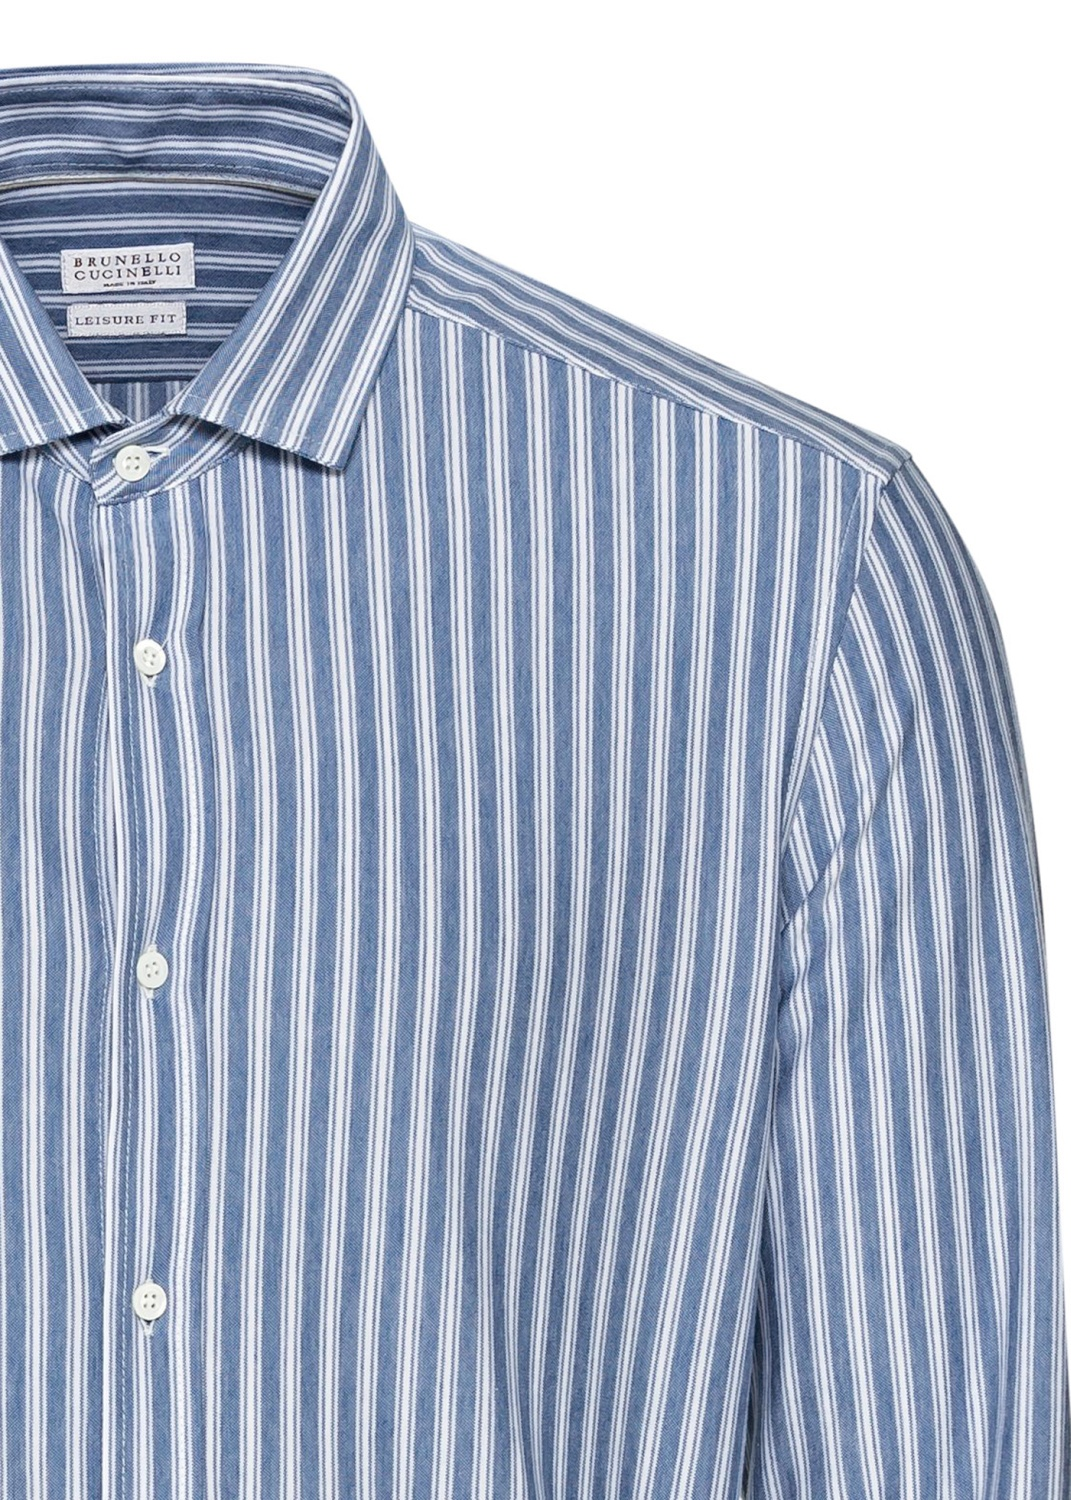 Cotton Jersey Striped Shirt image number 2